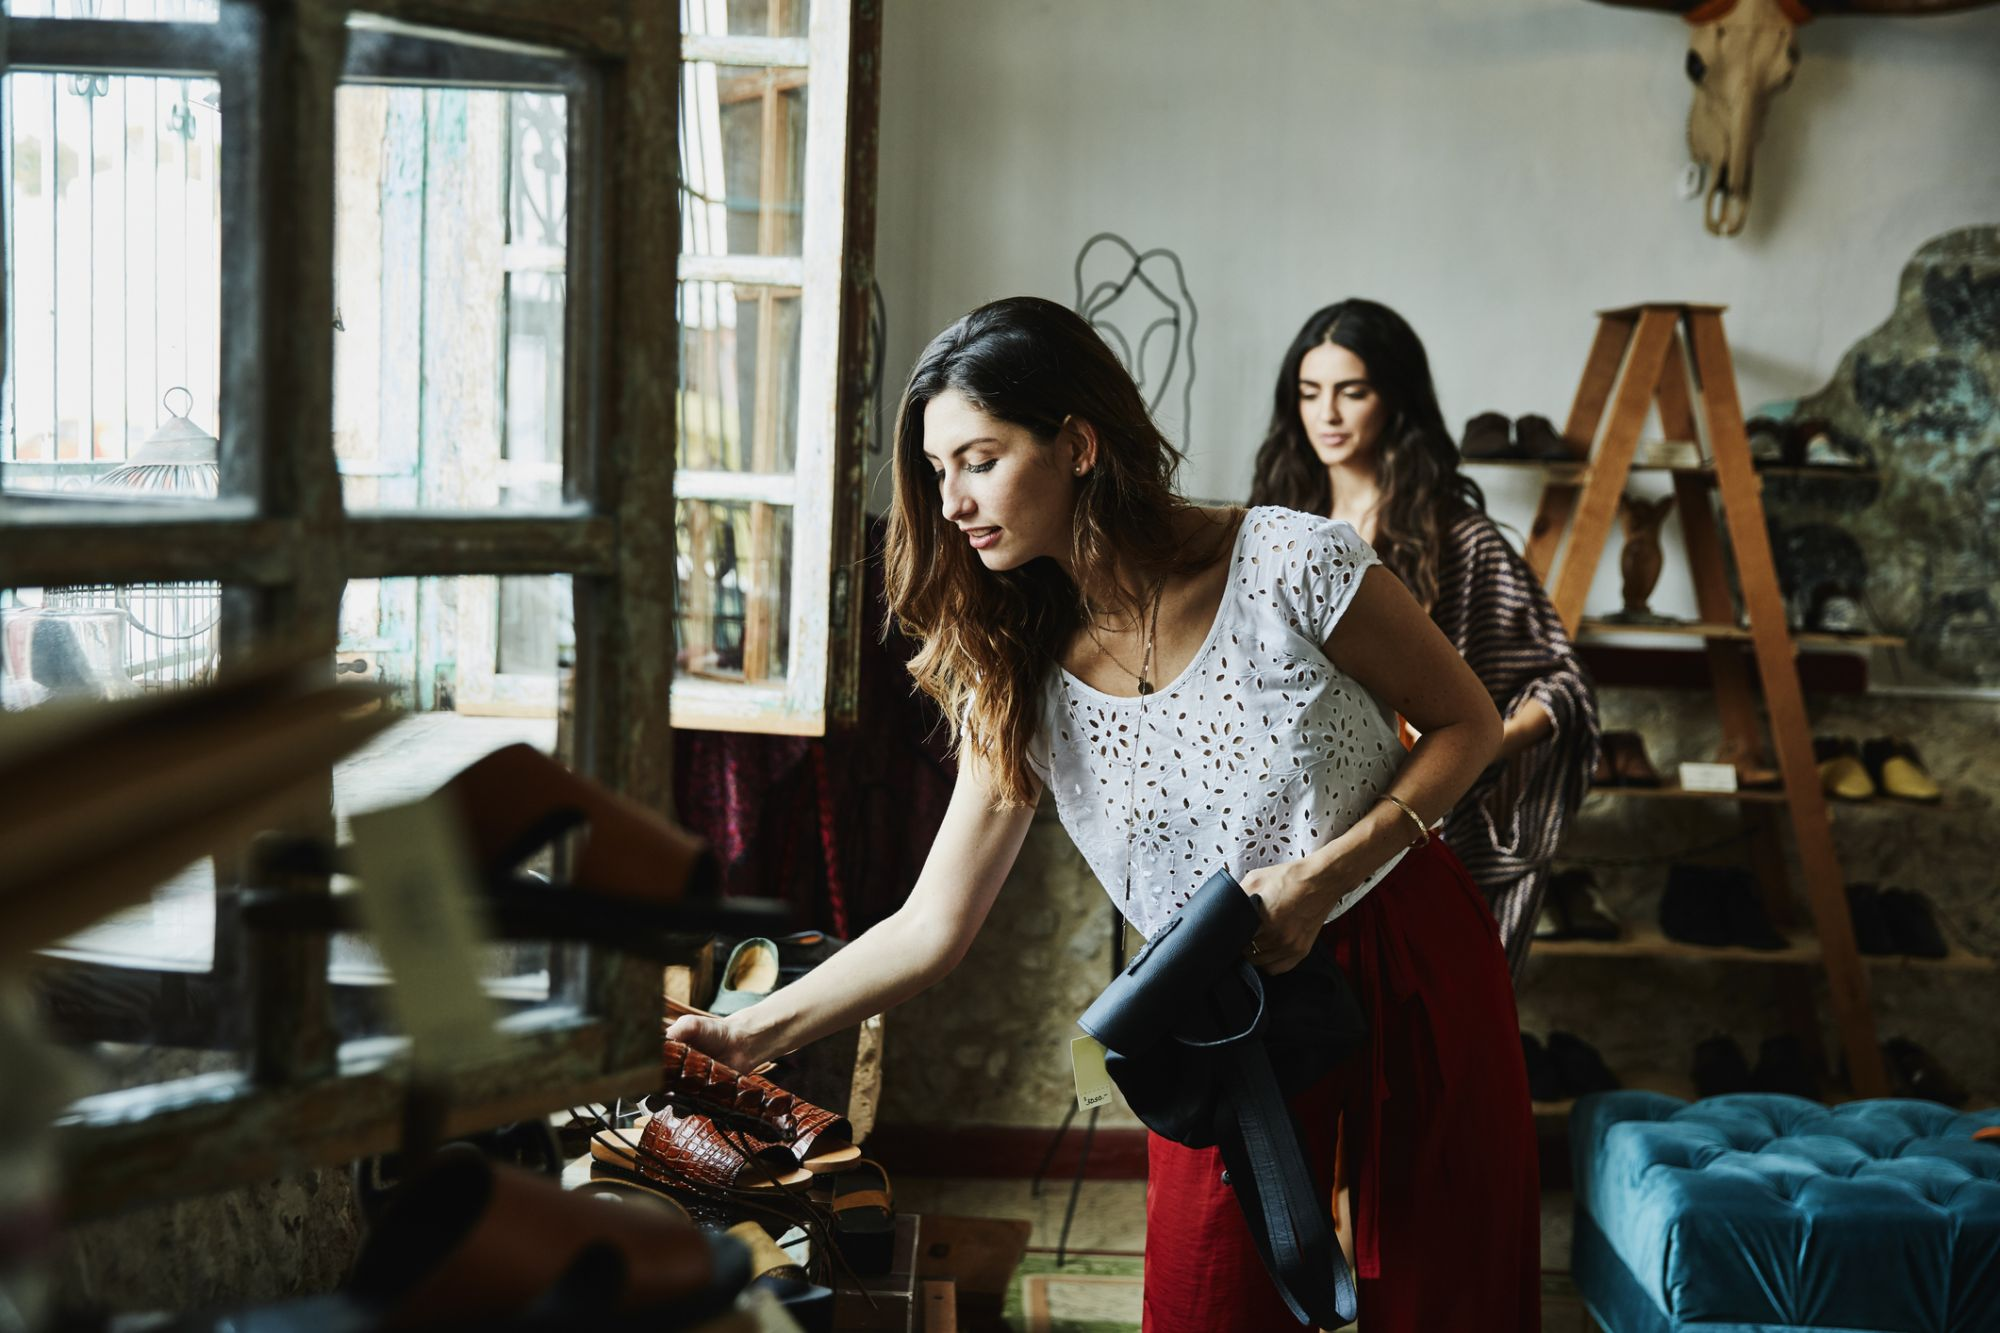 3 Ways Your Small Business Can Pivot Toward Focusing More on Hispanic Consumers